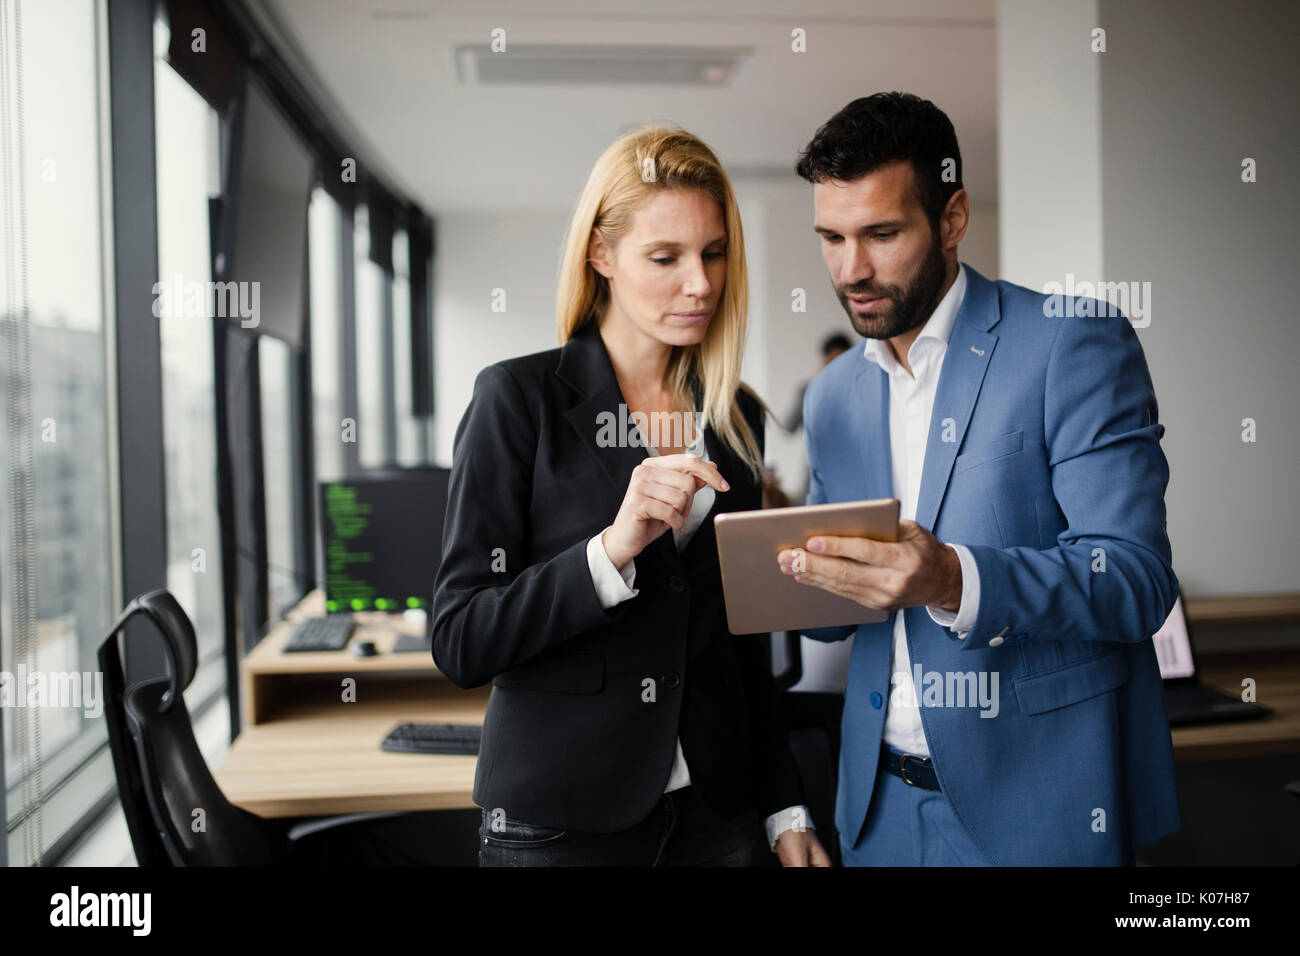 Portrait of attractive business partners using tablet - Stock Image